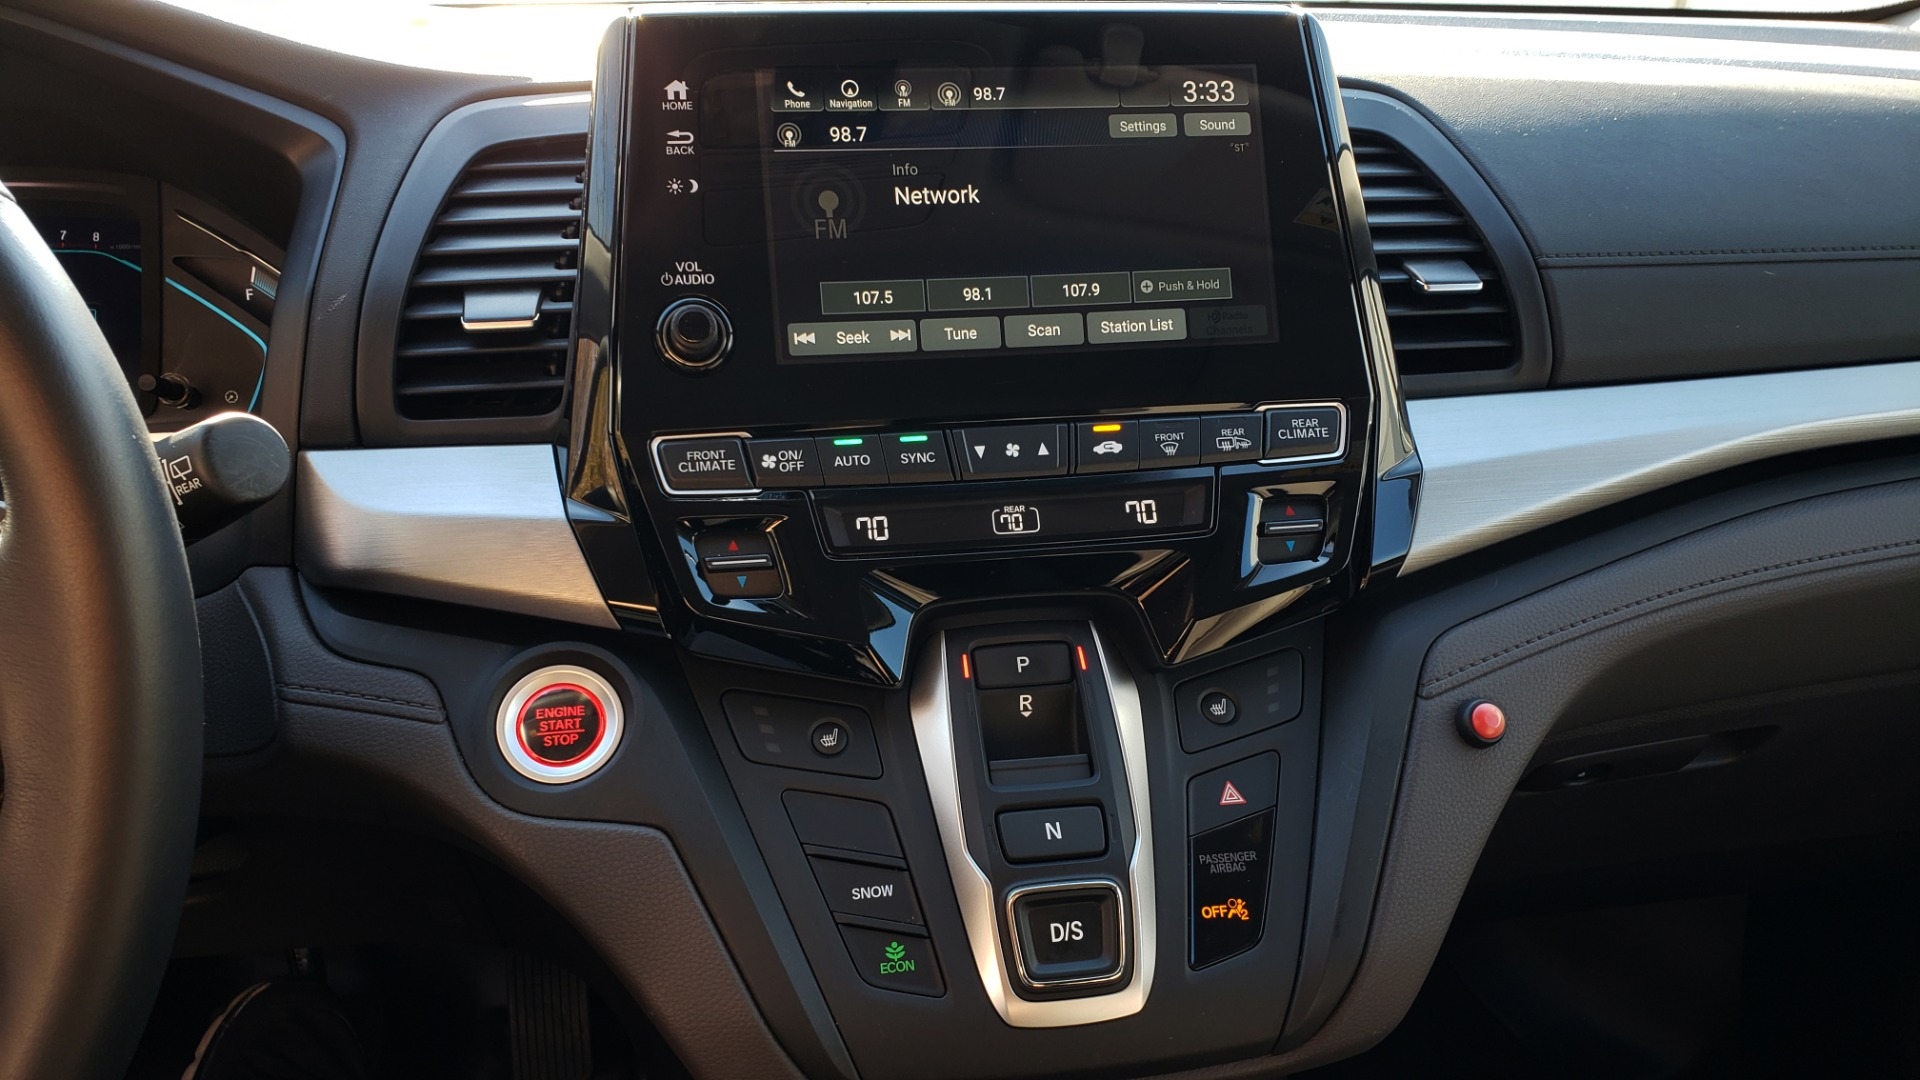 Used 2019 Honda ODYSSEY EX-L BRAUNABILITY / NAV / RES / LKA / BLUE-RAY / SUNROOF / REARVIEW for sale $49,999 at Formula Imports in Charlotte NC 28227 22